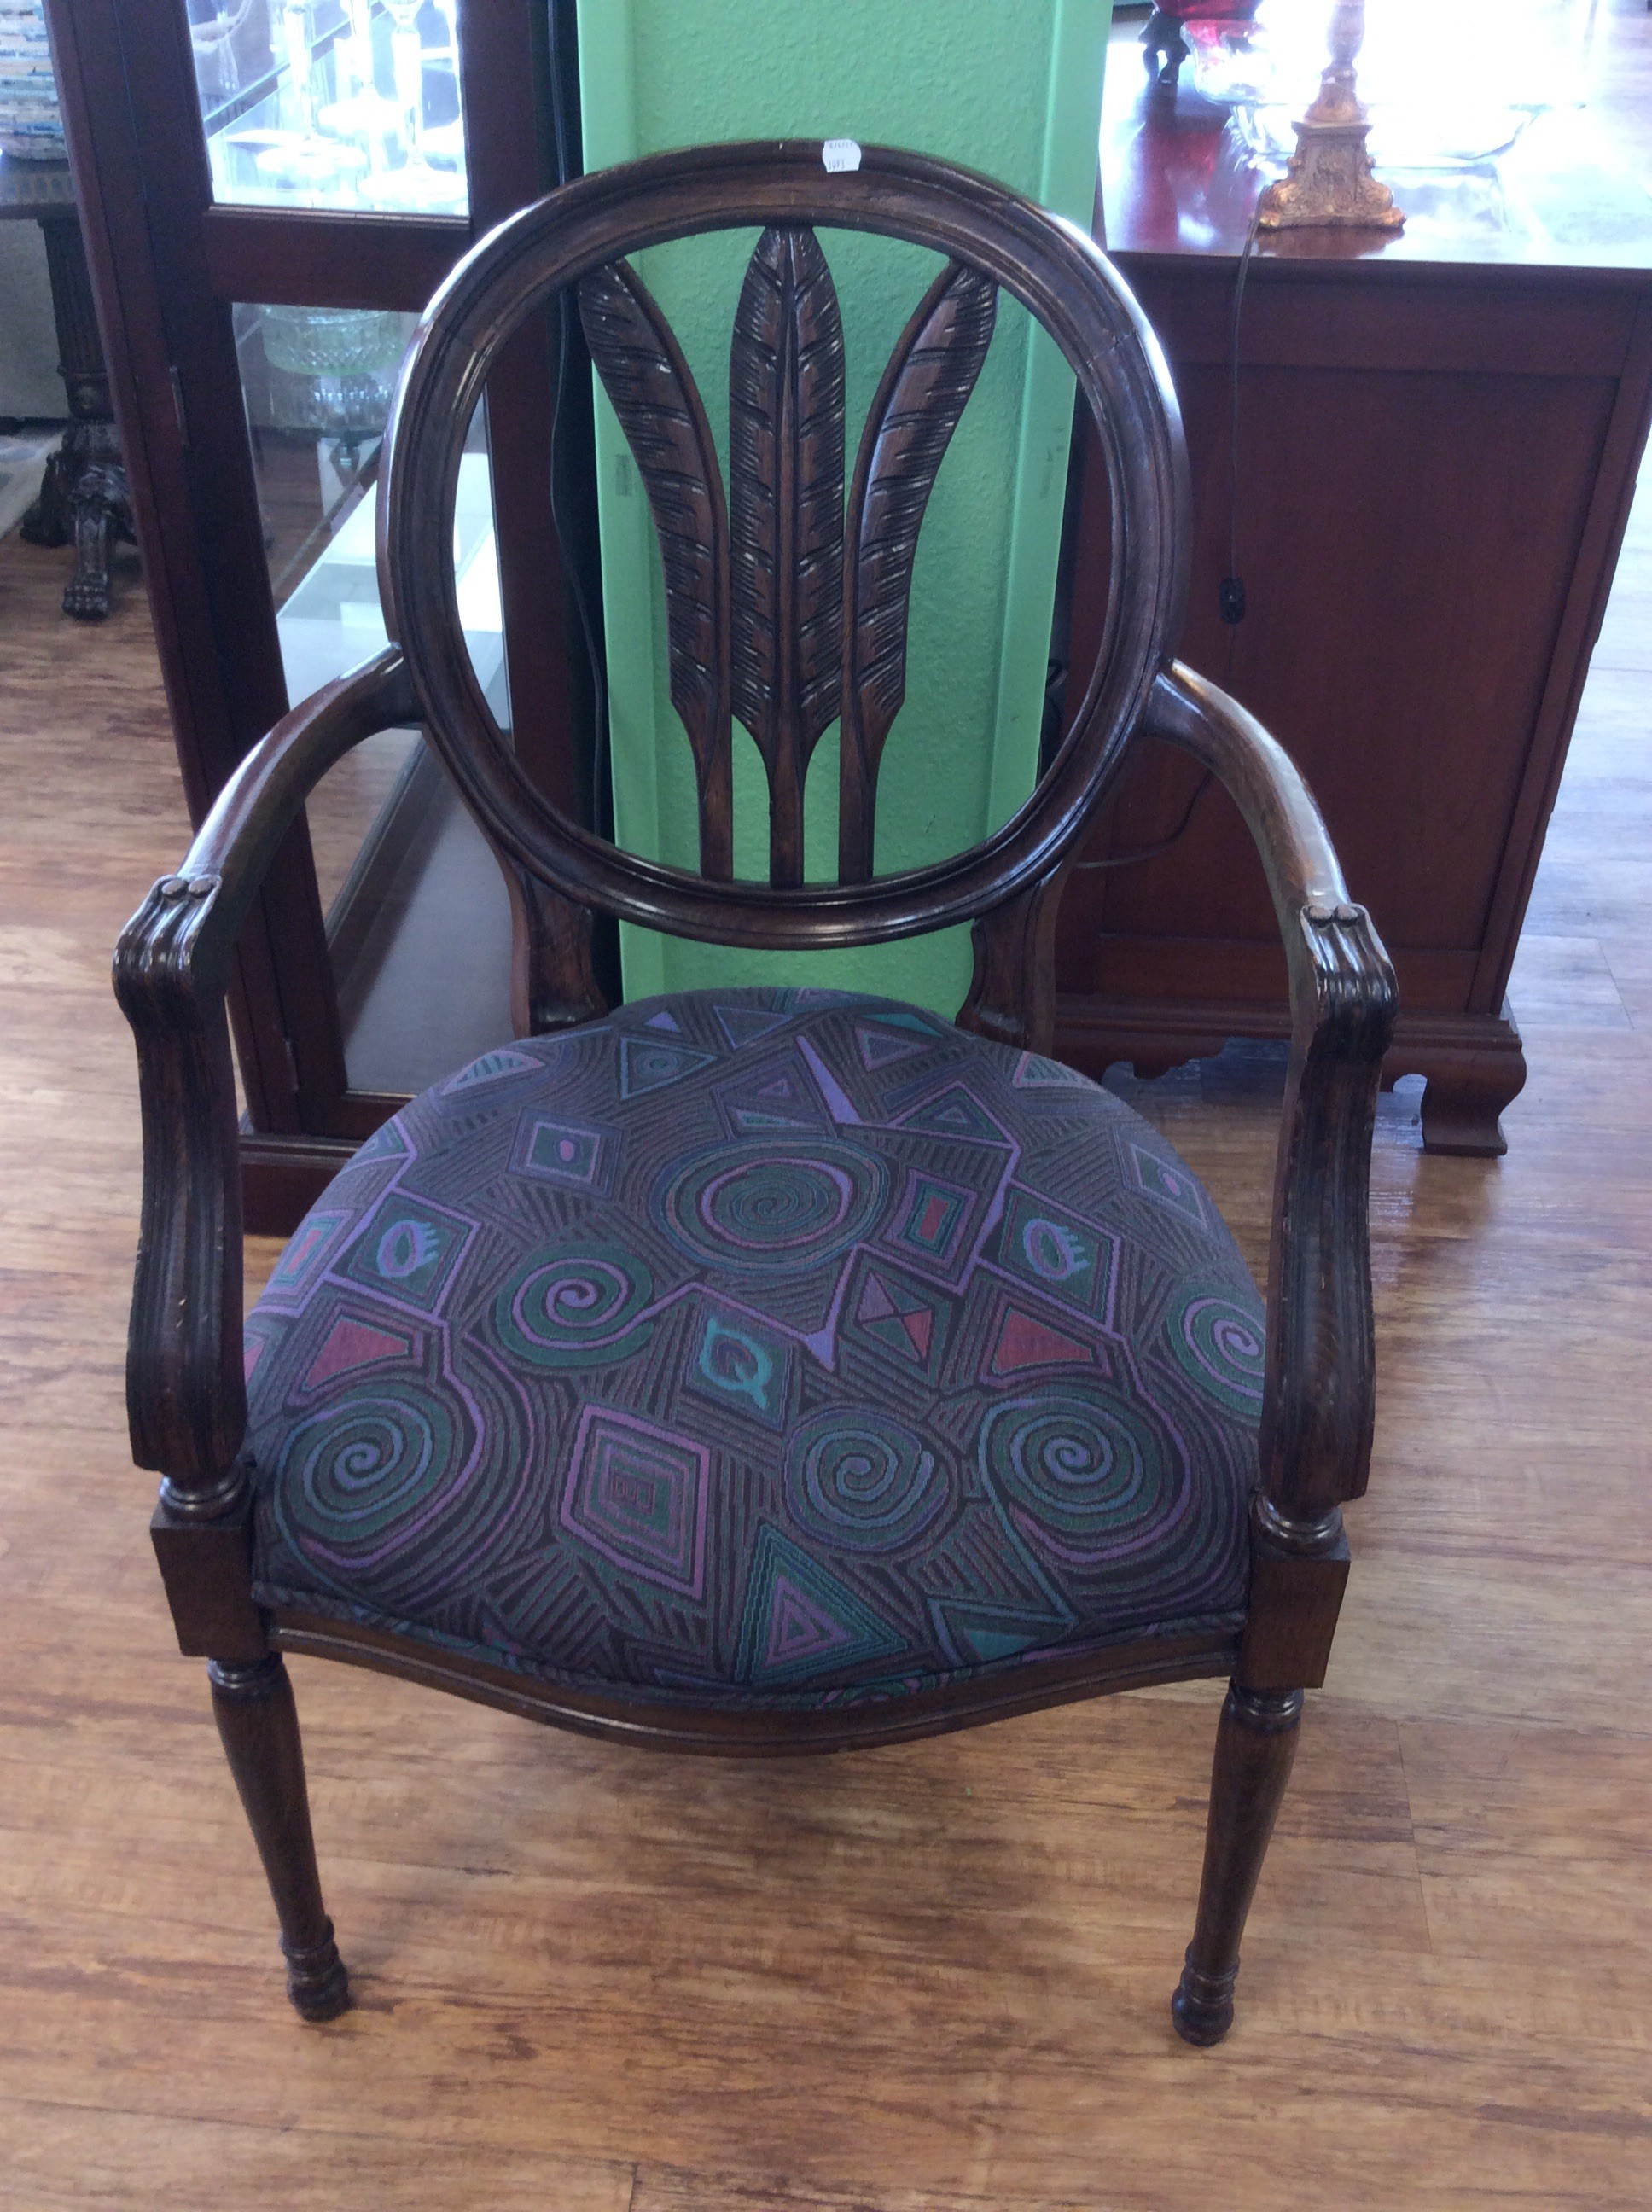 This is an interesting arm chair! It features a lovely carved wood frame in a rich, dark finish. The seat is upholstered in a thoroughly modern geometric pattern of purples, greens, black and pinky/red. Come by and take a look soon!